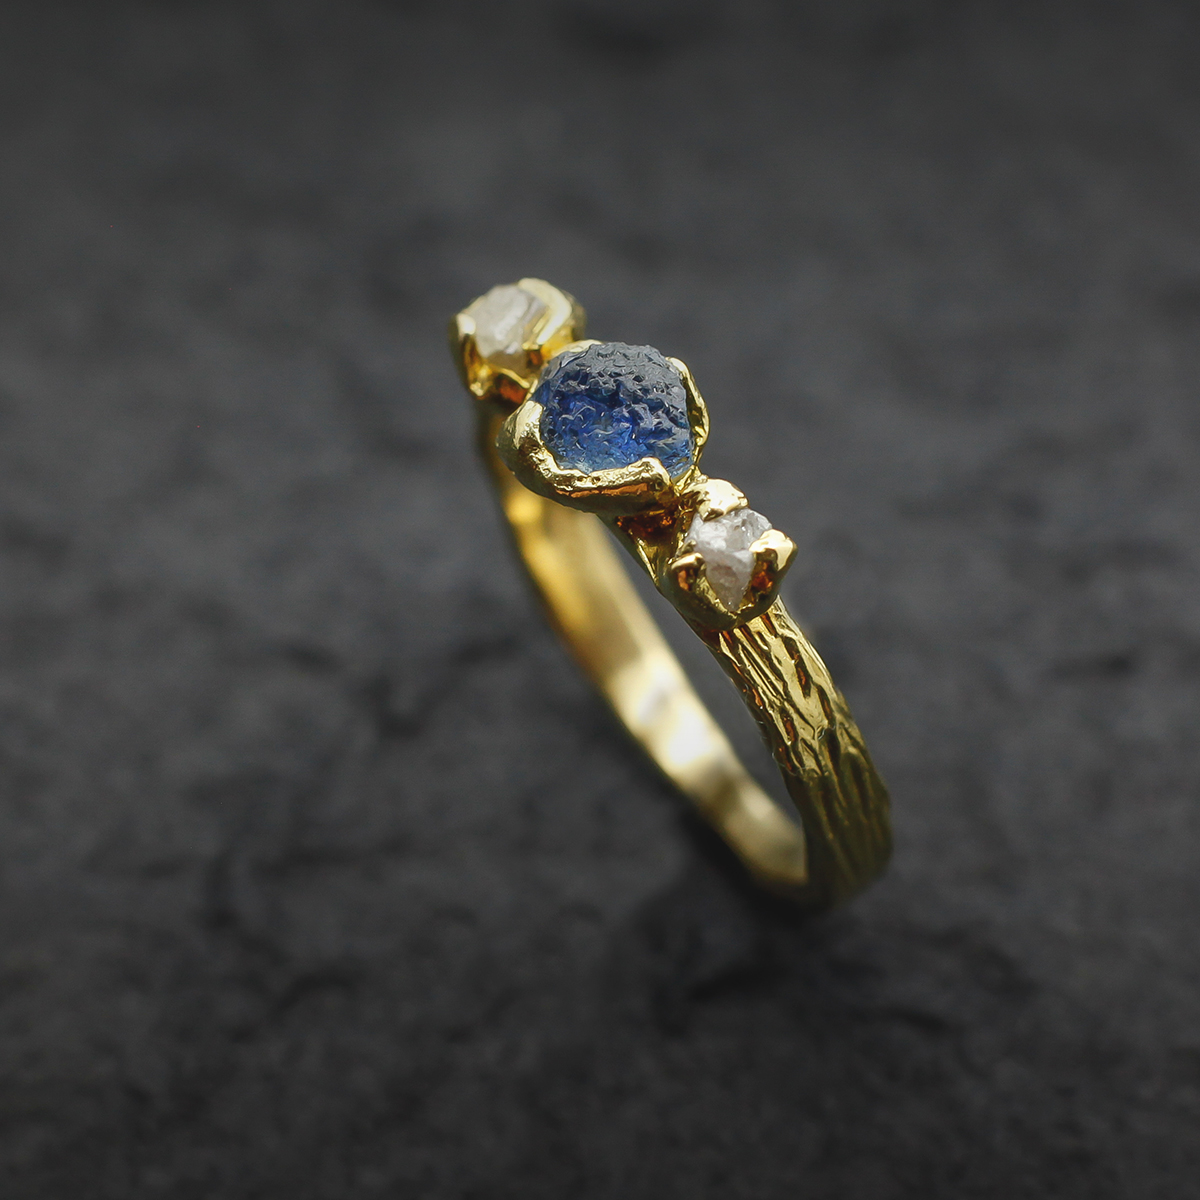 yellow gold ring with sapphire and diamond